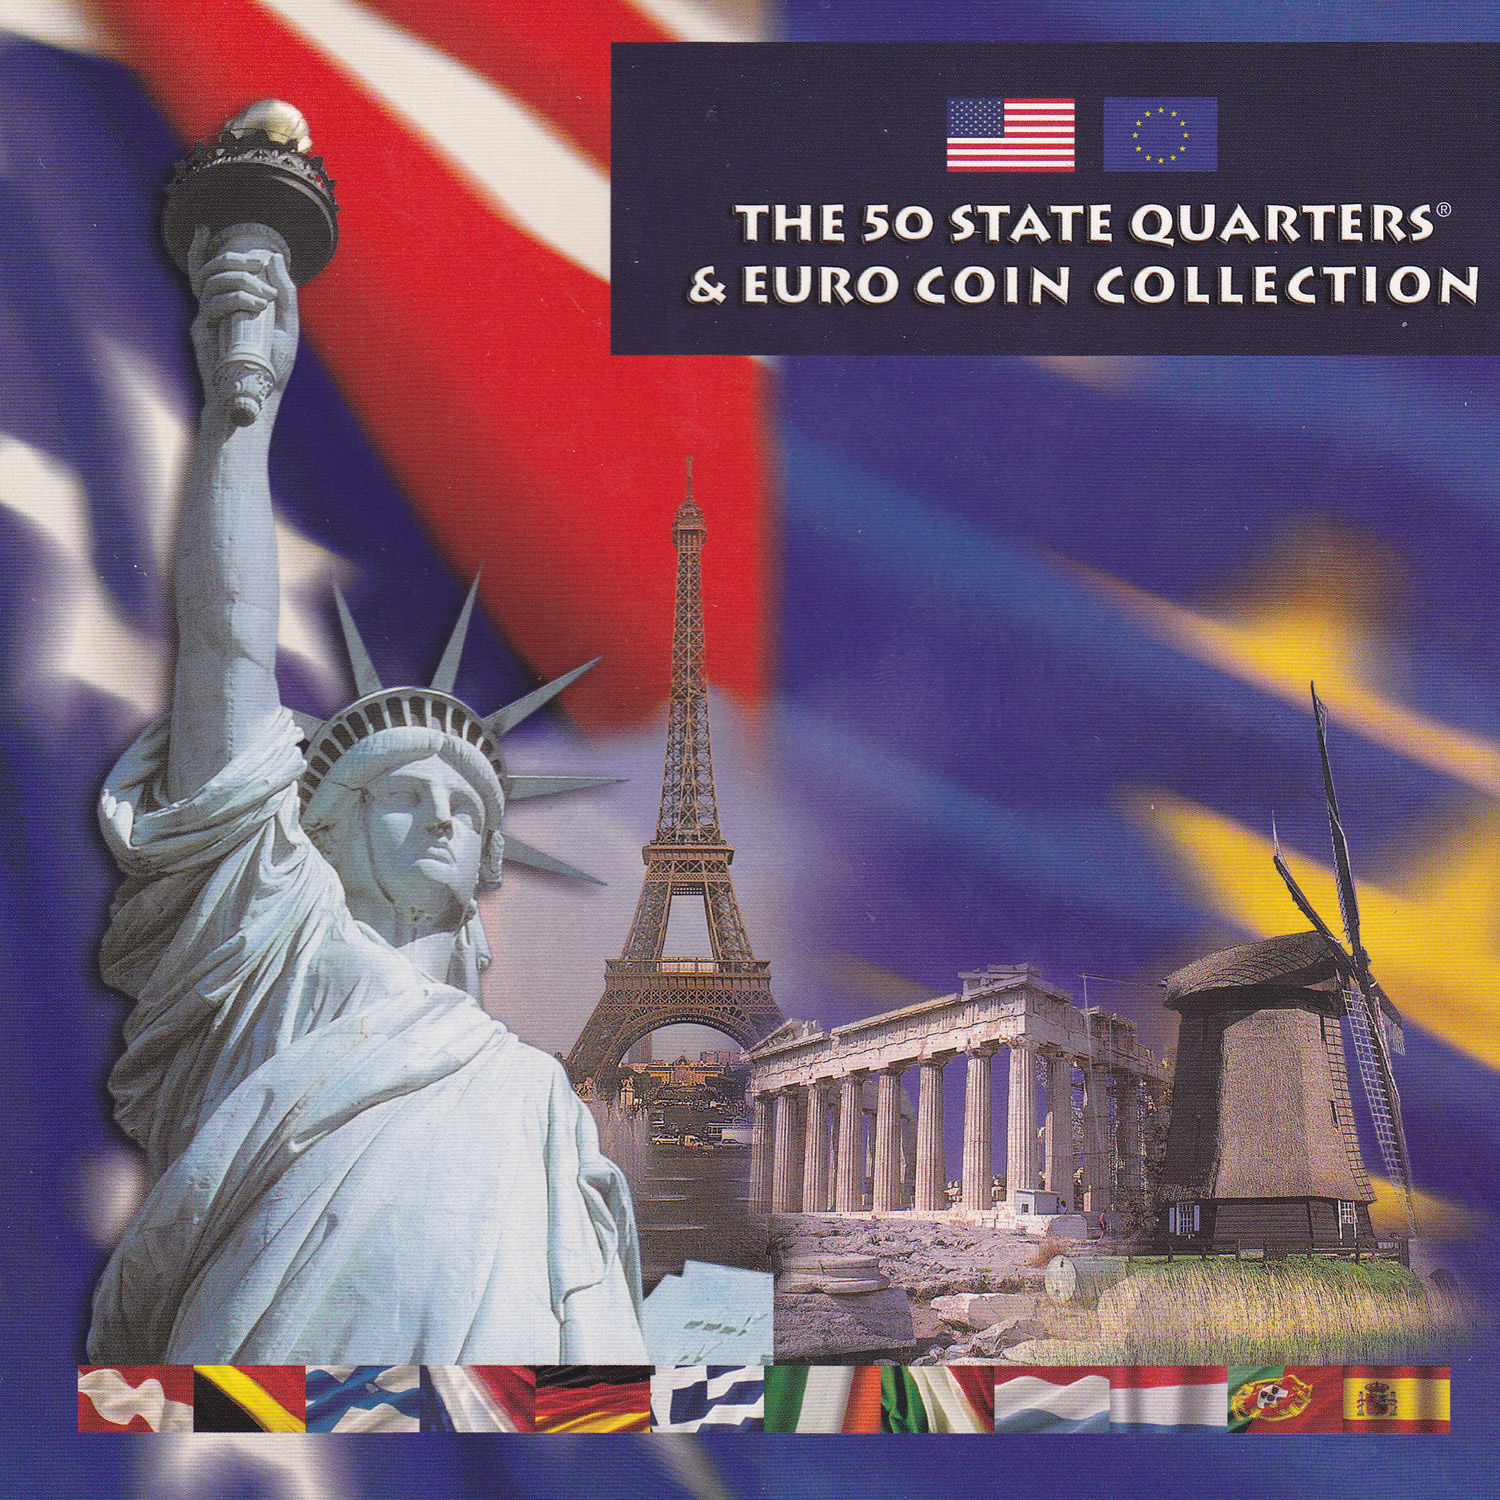 The 50 State Quarters & Euro Coin Collection